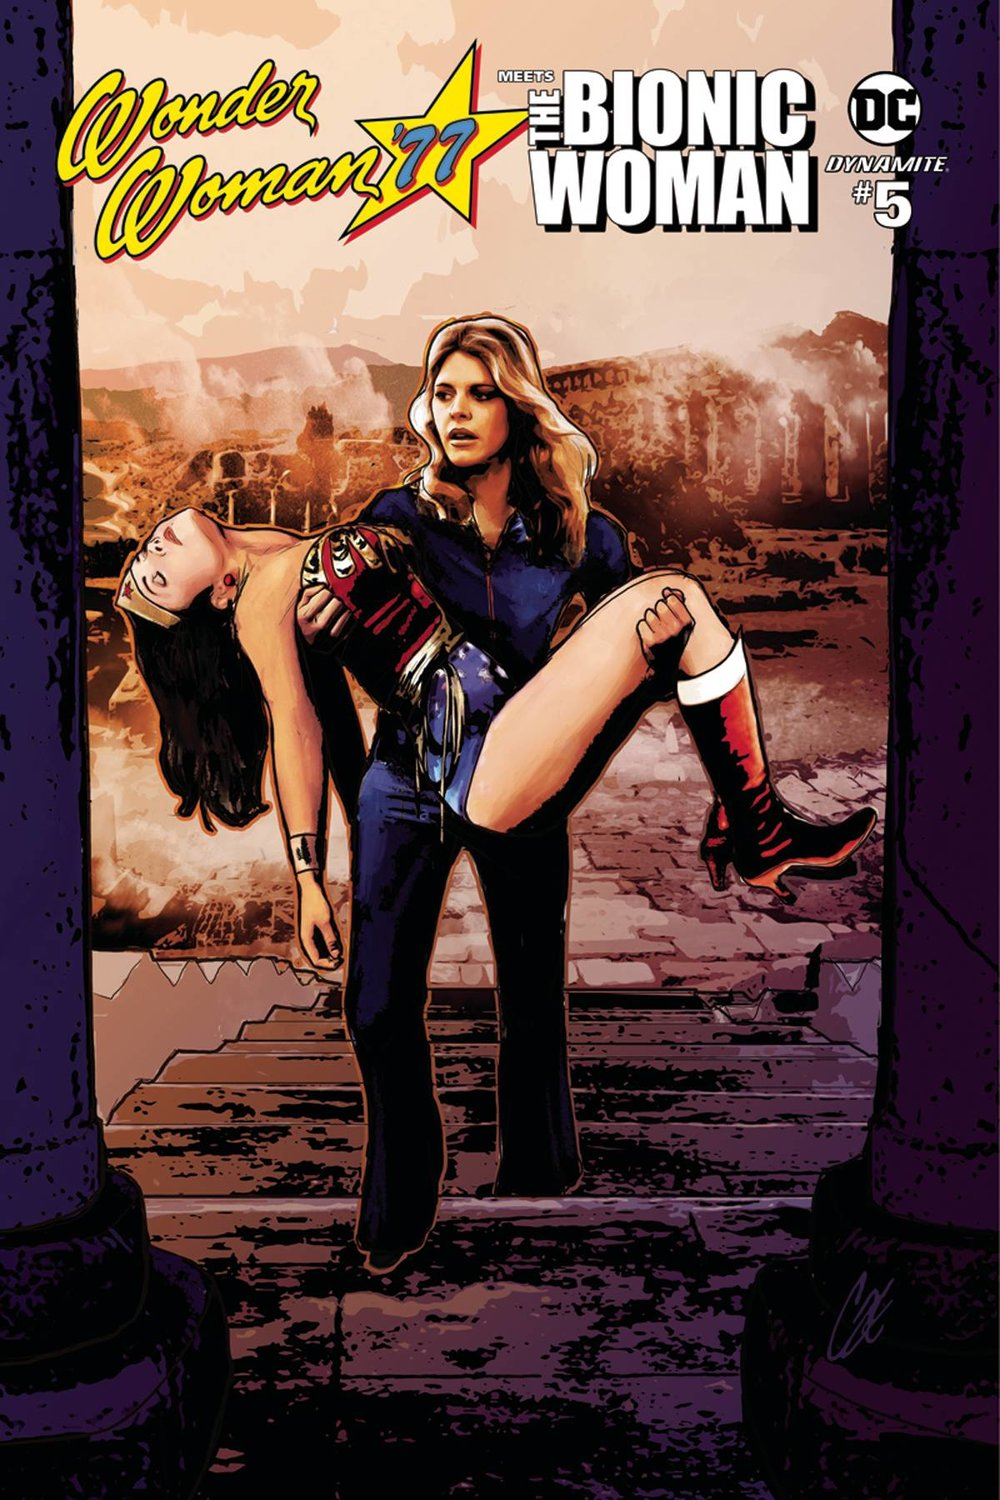 WONDER WOMAN 77 BIONIC WOMAN 5 of 6 CVR A STAGGS.jpg